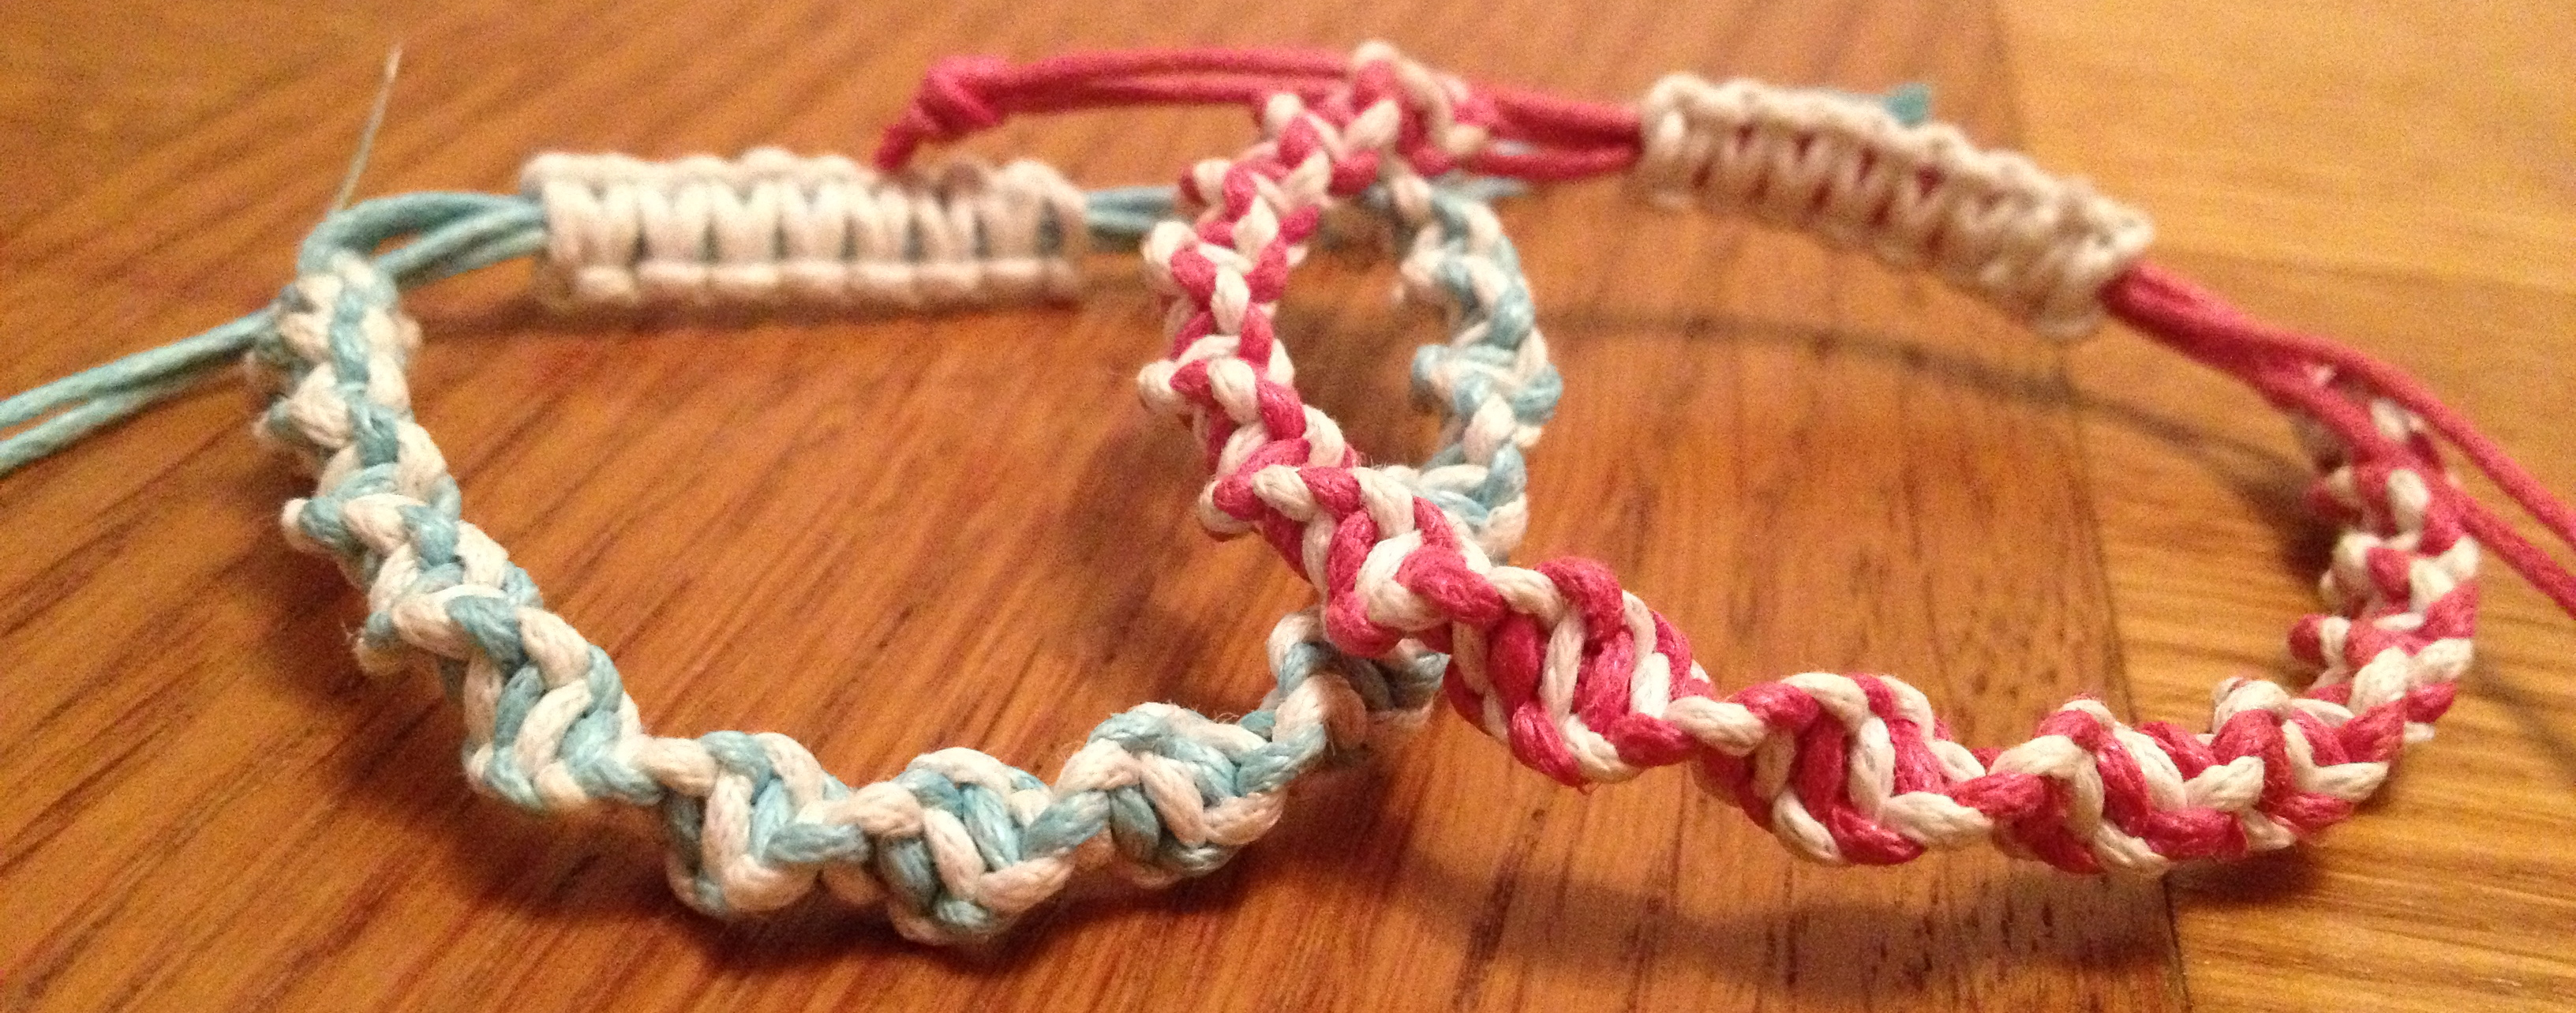 Personalized macrame bracelets heart handmade blog for How to sell handmade crafts on facebook